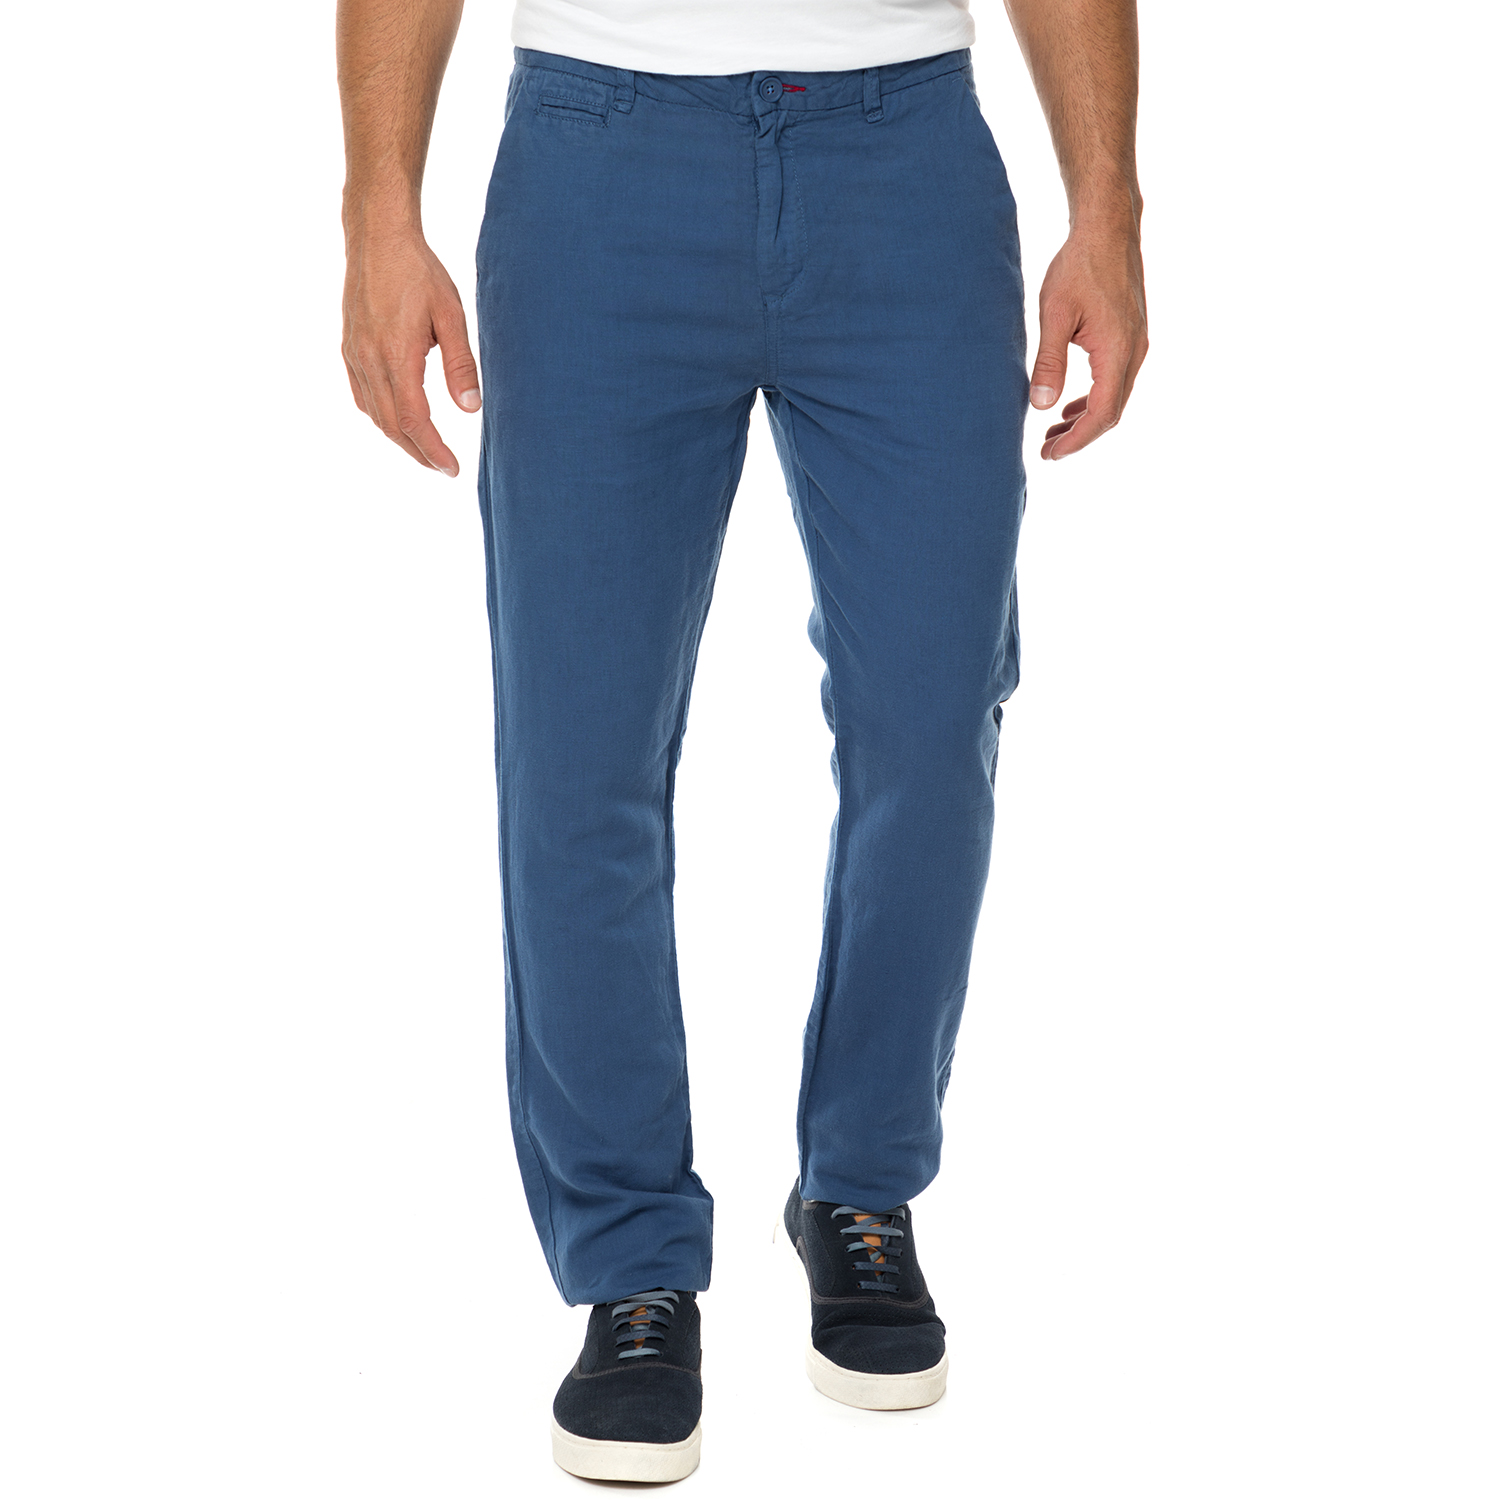 GUESS - Ανδρικό λινό παντελόνι chino GUESS ALAIN SLIM STRAIGHT μπλε 043dfce68e6